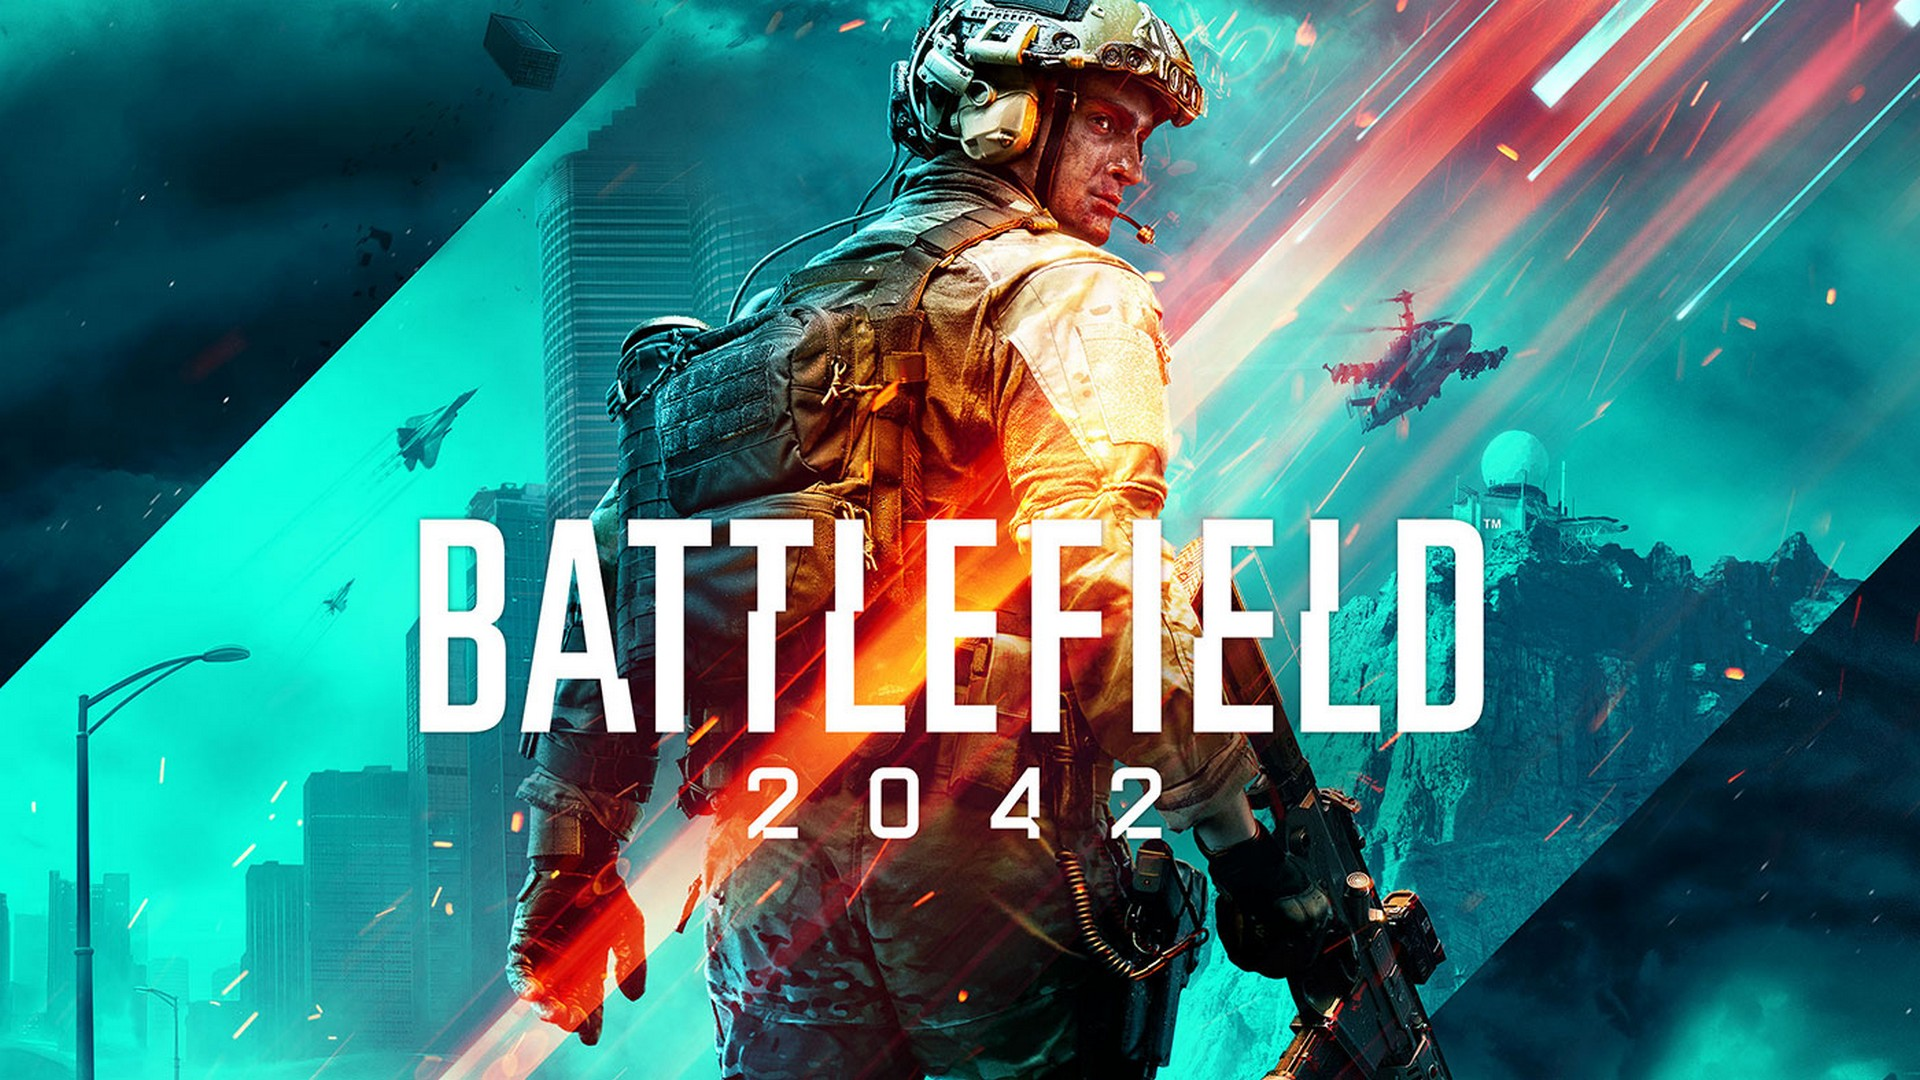 Battlefield 2042 Marks The Return Of All-Out Warfare In New, Unmatched, Epic-Scale Experience